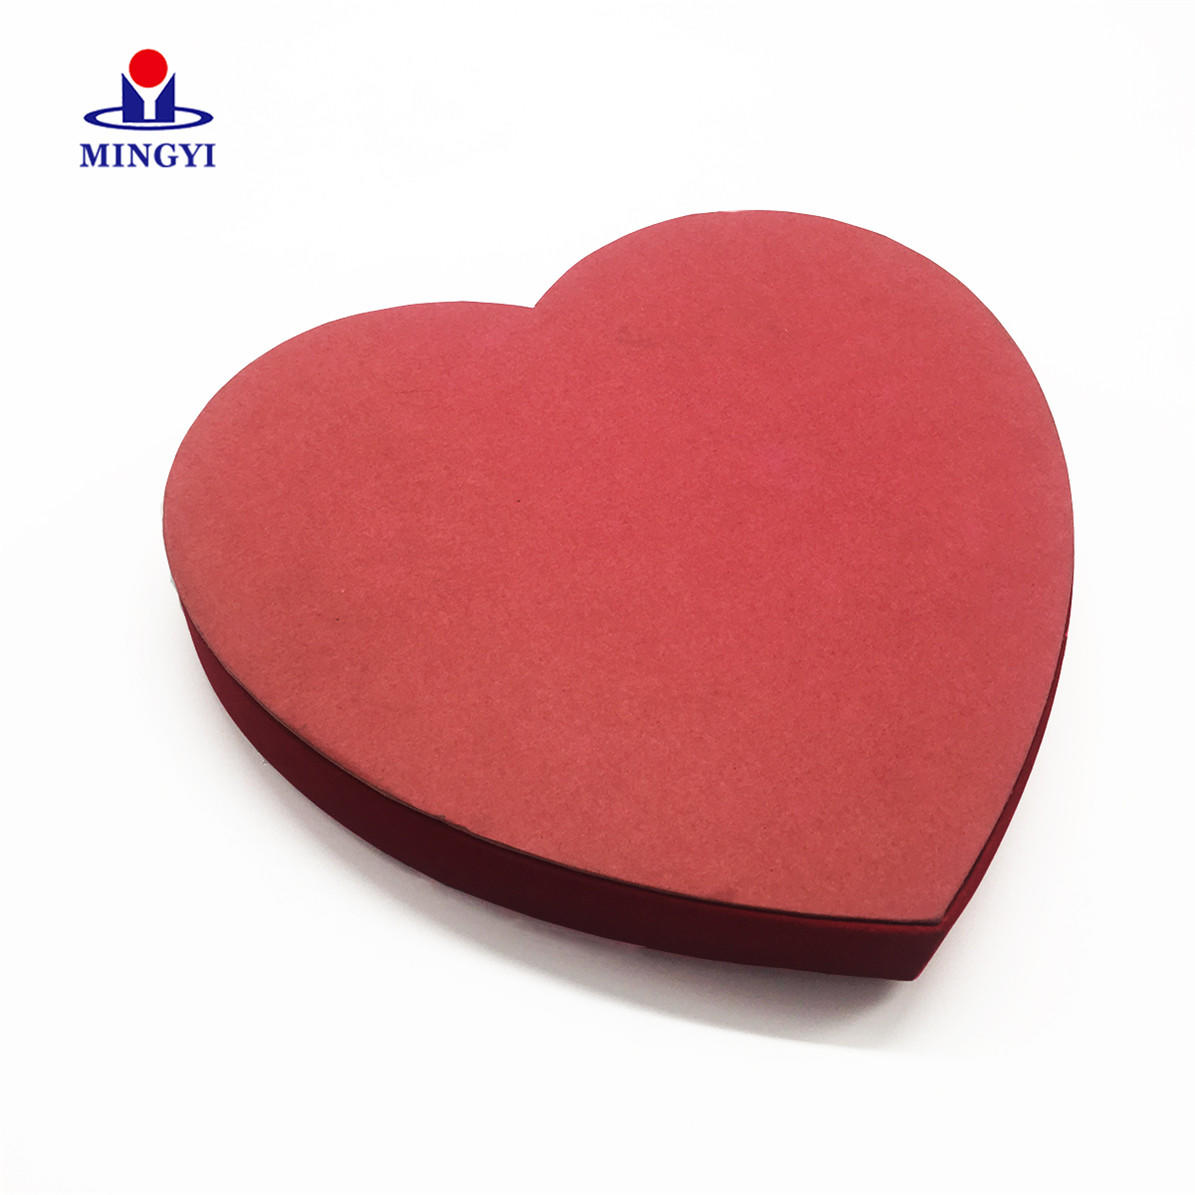 China Factory Luxury Hand Make Big Heart Shape Clothes Paper display box